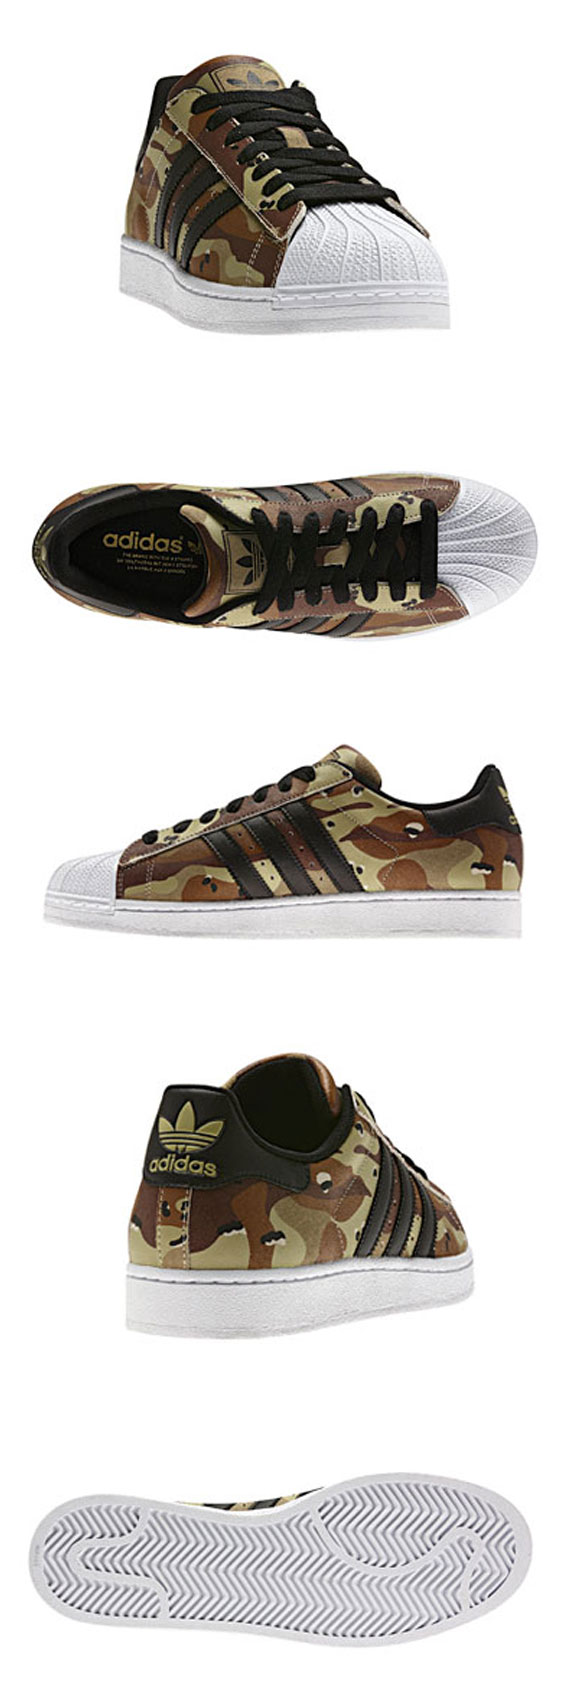 Women's adidas Originals Superstar 2 Christmas Pack Shoes